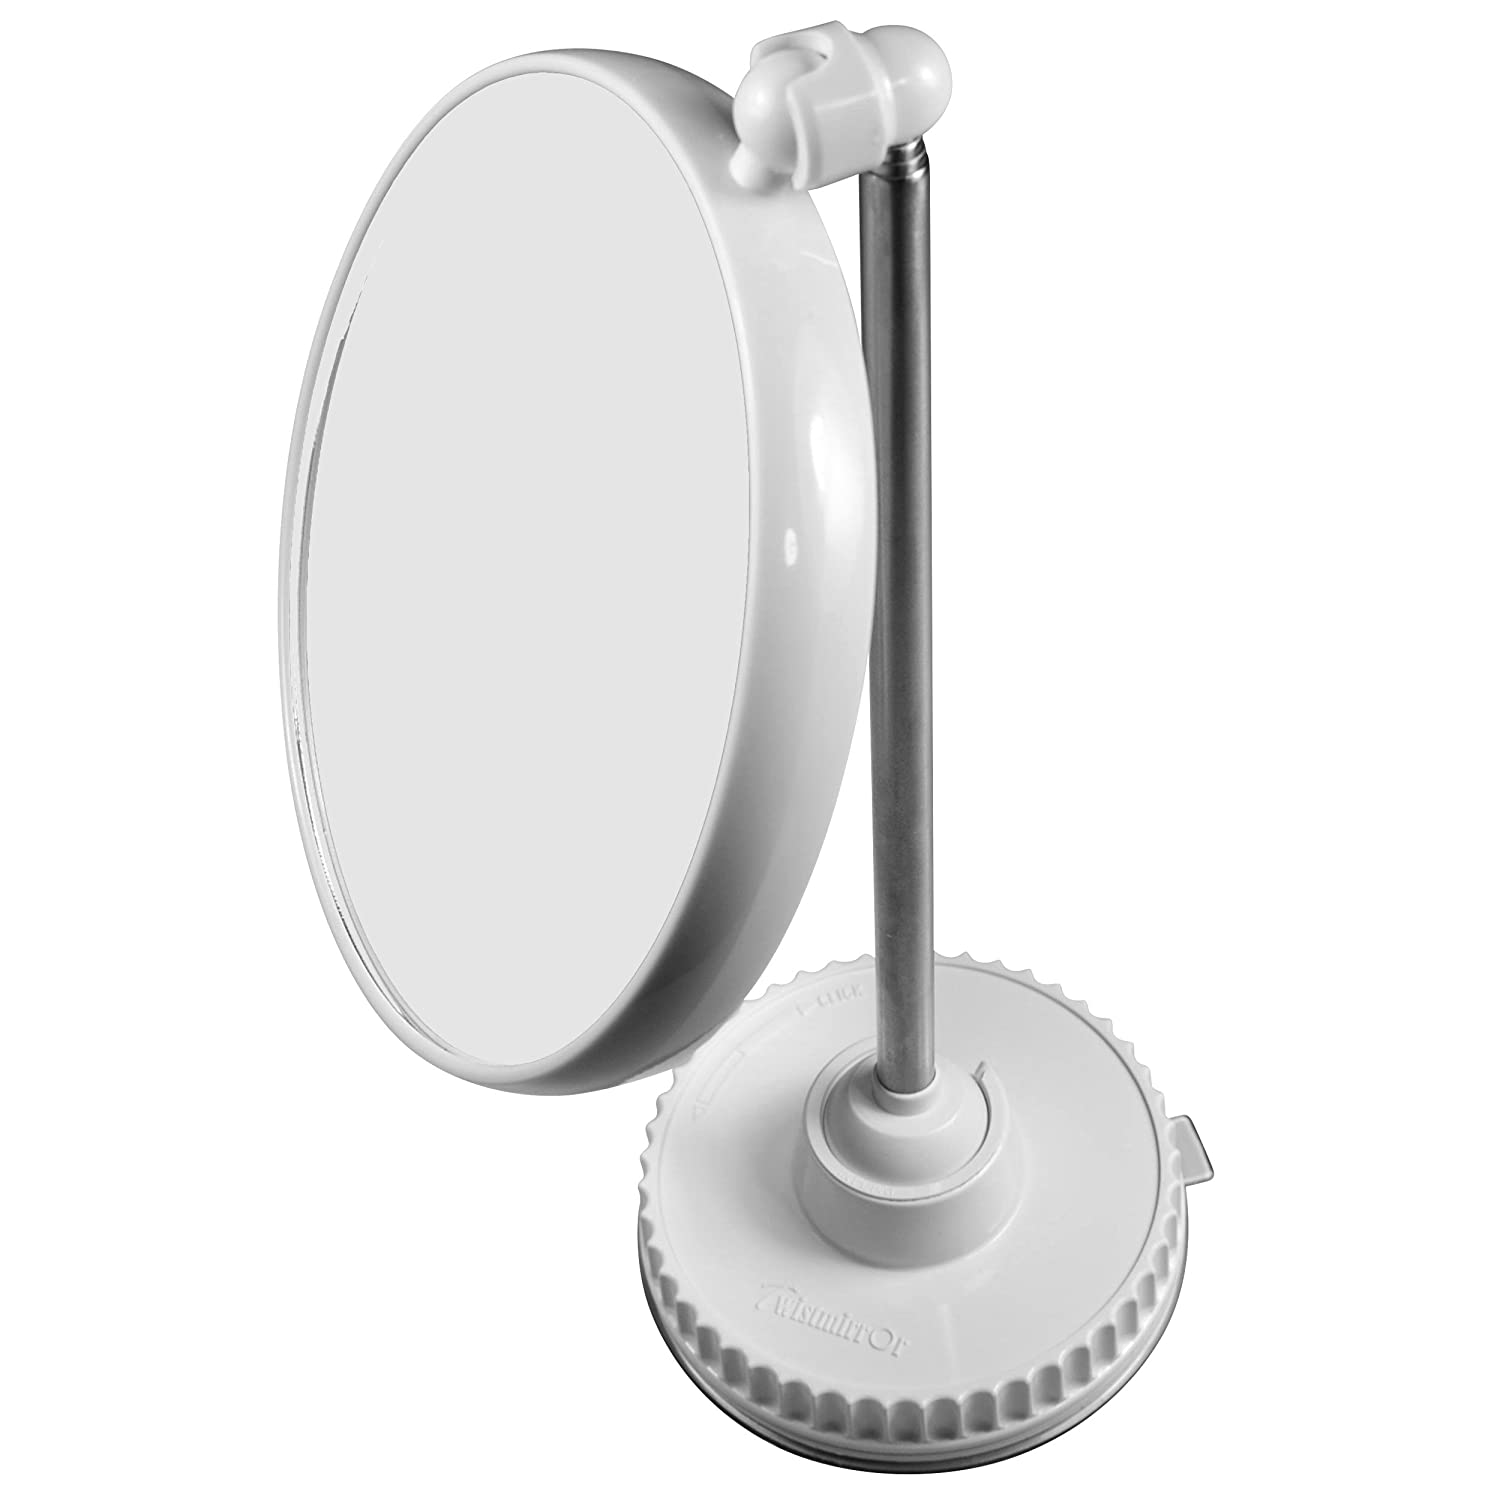 Amazon.com: Telescoping Twistmirror 10X to 1X Suction Cup Magnifying ...